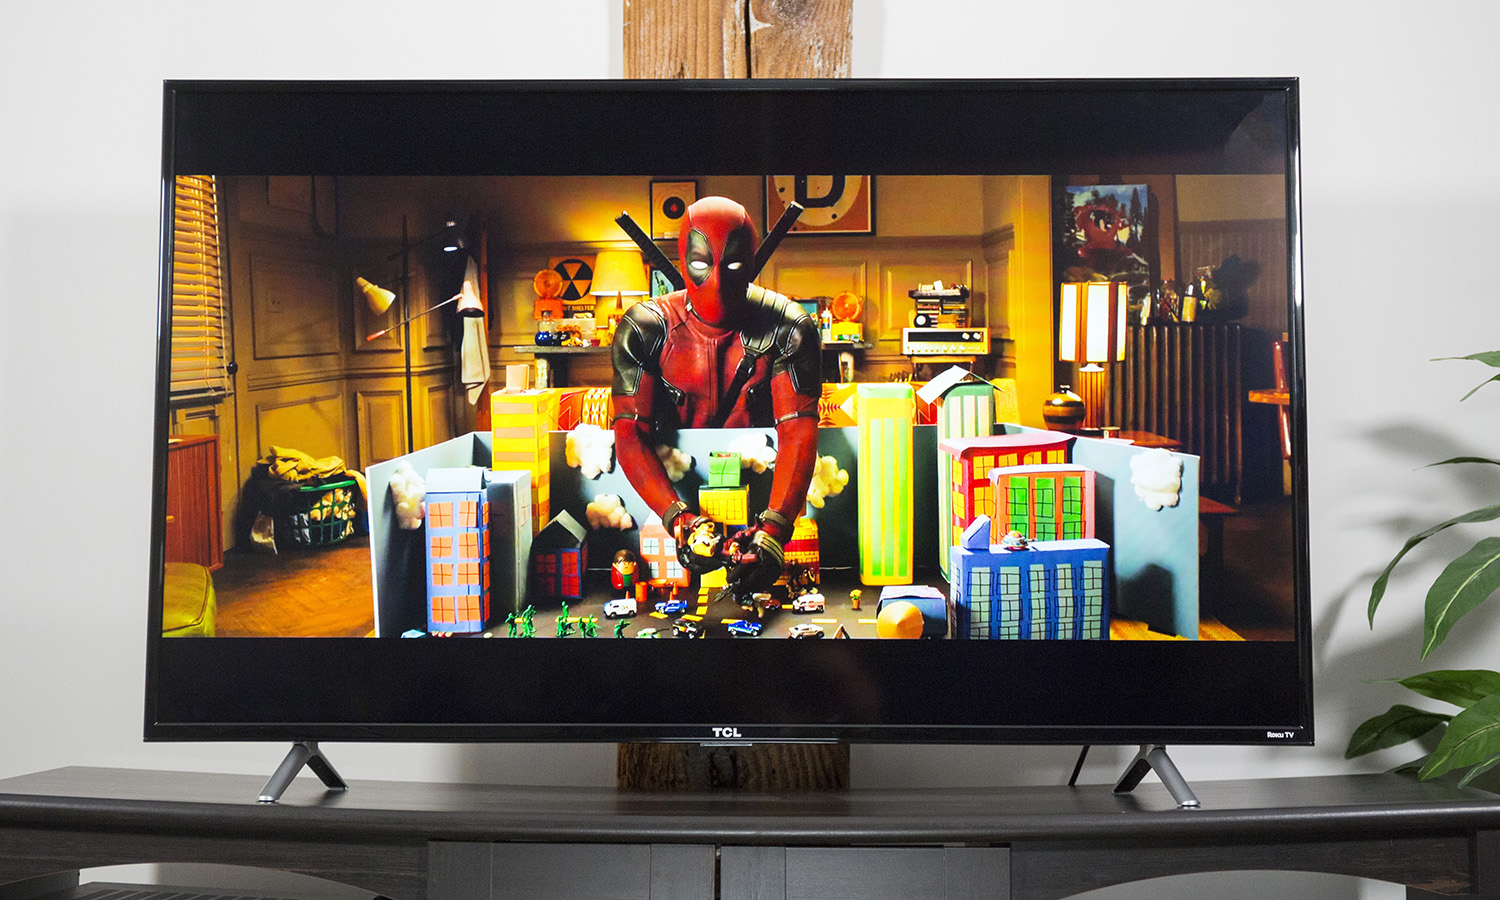 How to Fight Crime with your Television